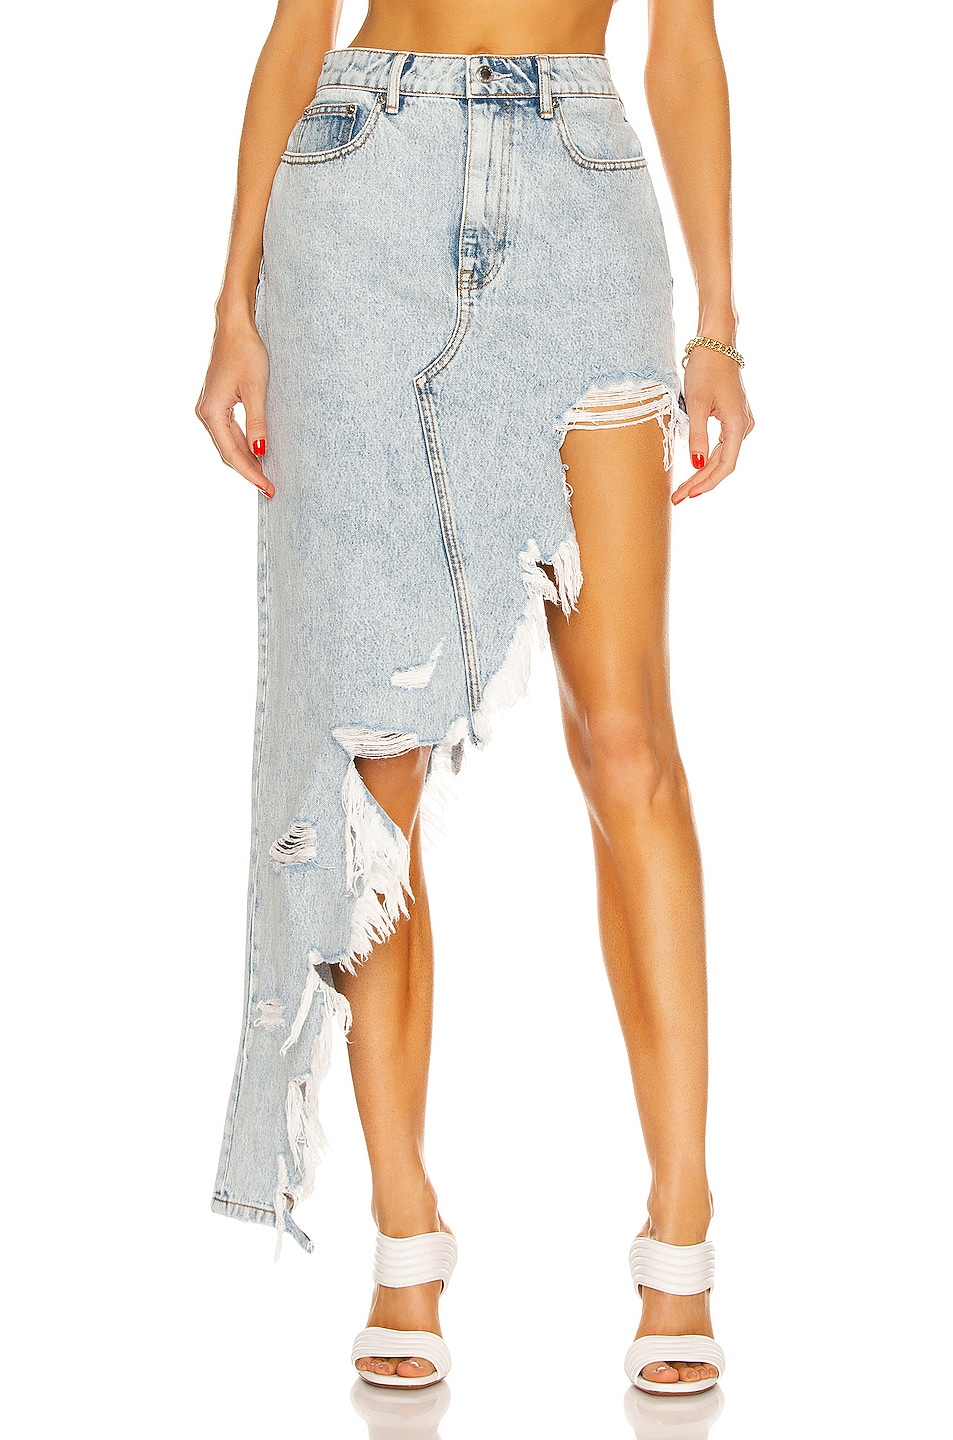 Image 1 of Alexander Wang Asymmetric Fray Denim Skirt in Pebble Bleach